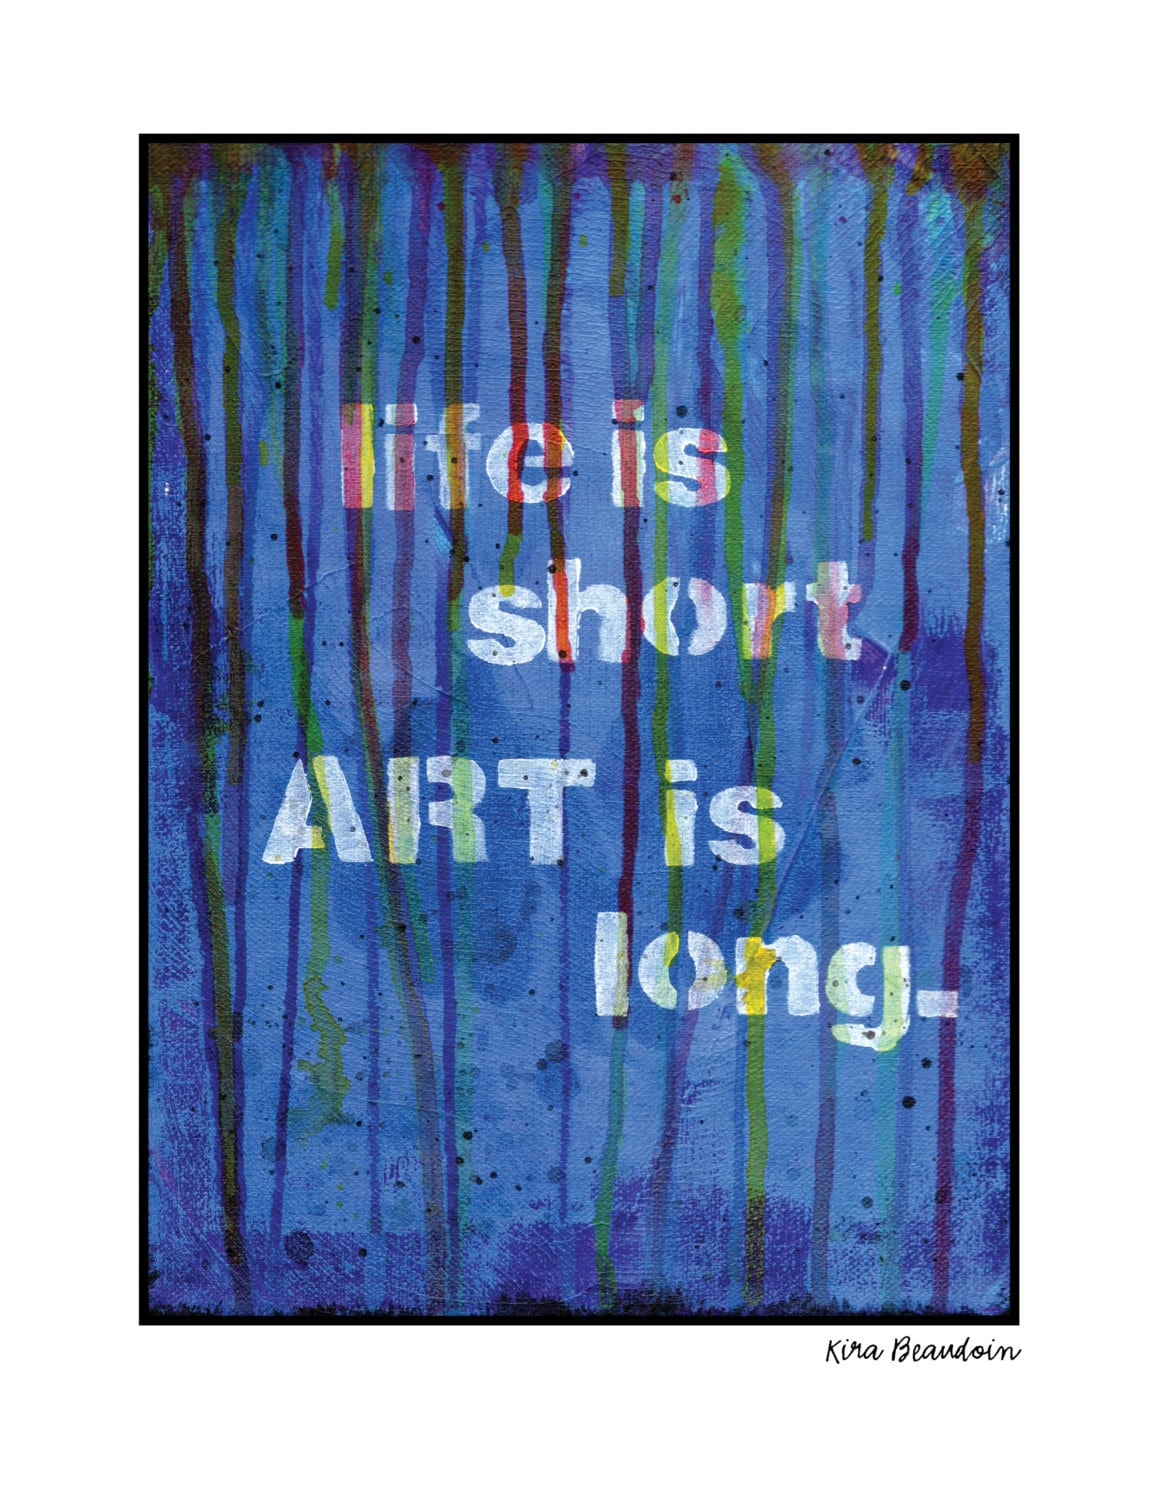 art is long life is short essay Com dear time reader, as art is long and life is short essay a regular visitor to how to write an essay about a best friend time sorry.